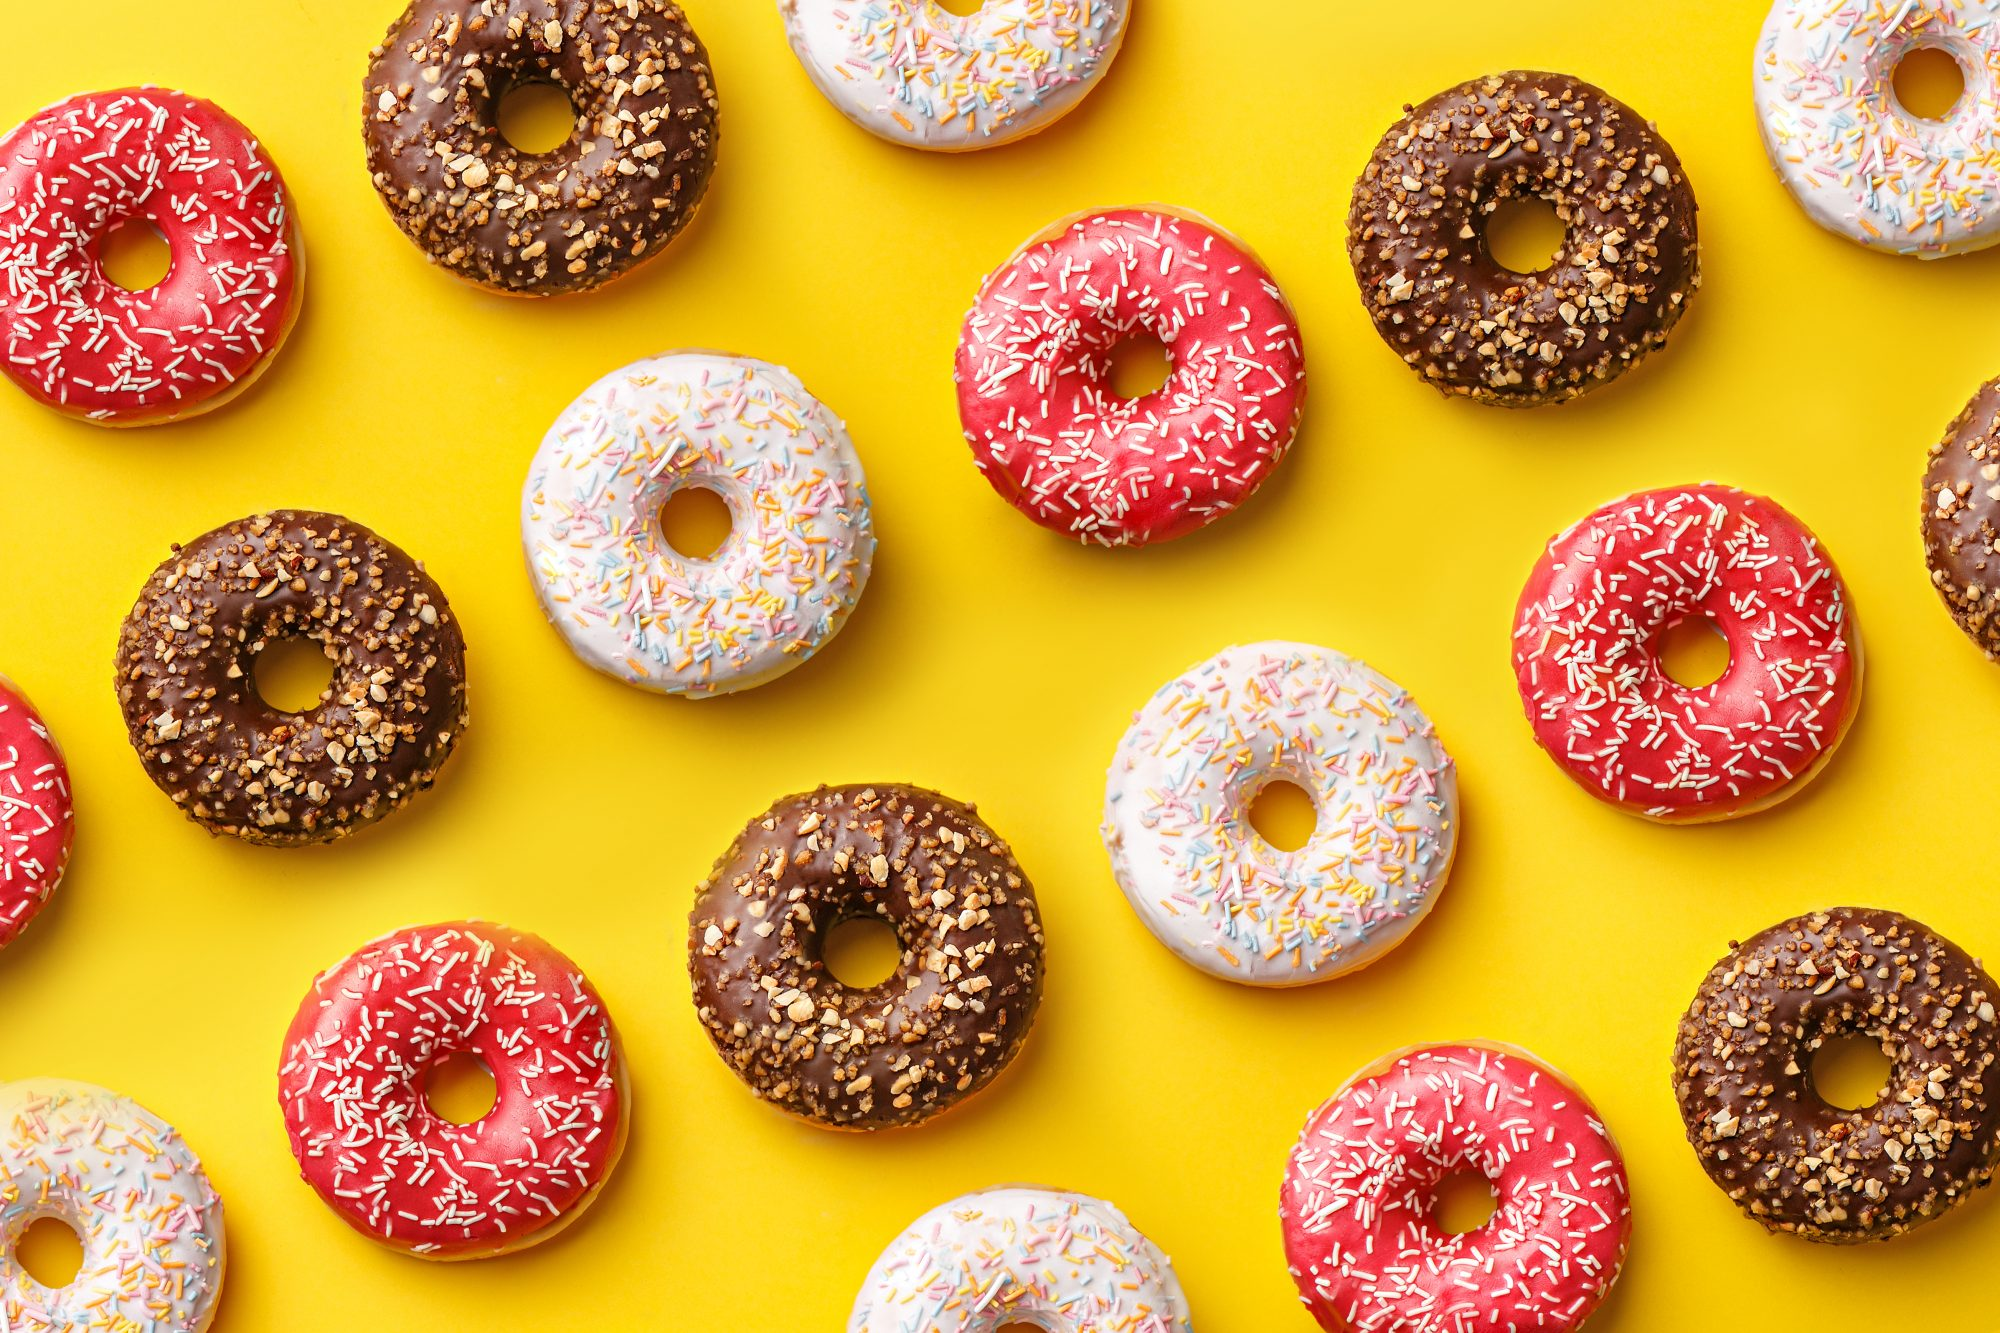 Flat lay donuts pattern on a yellow background. Top view